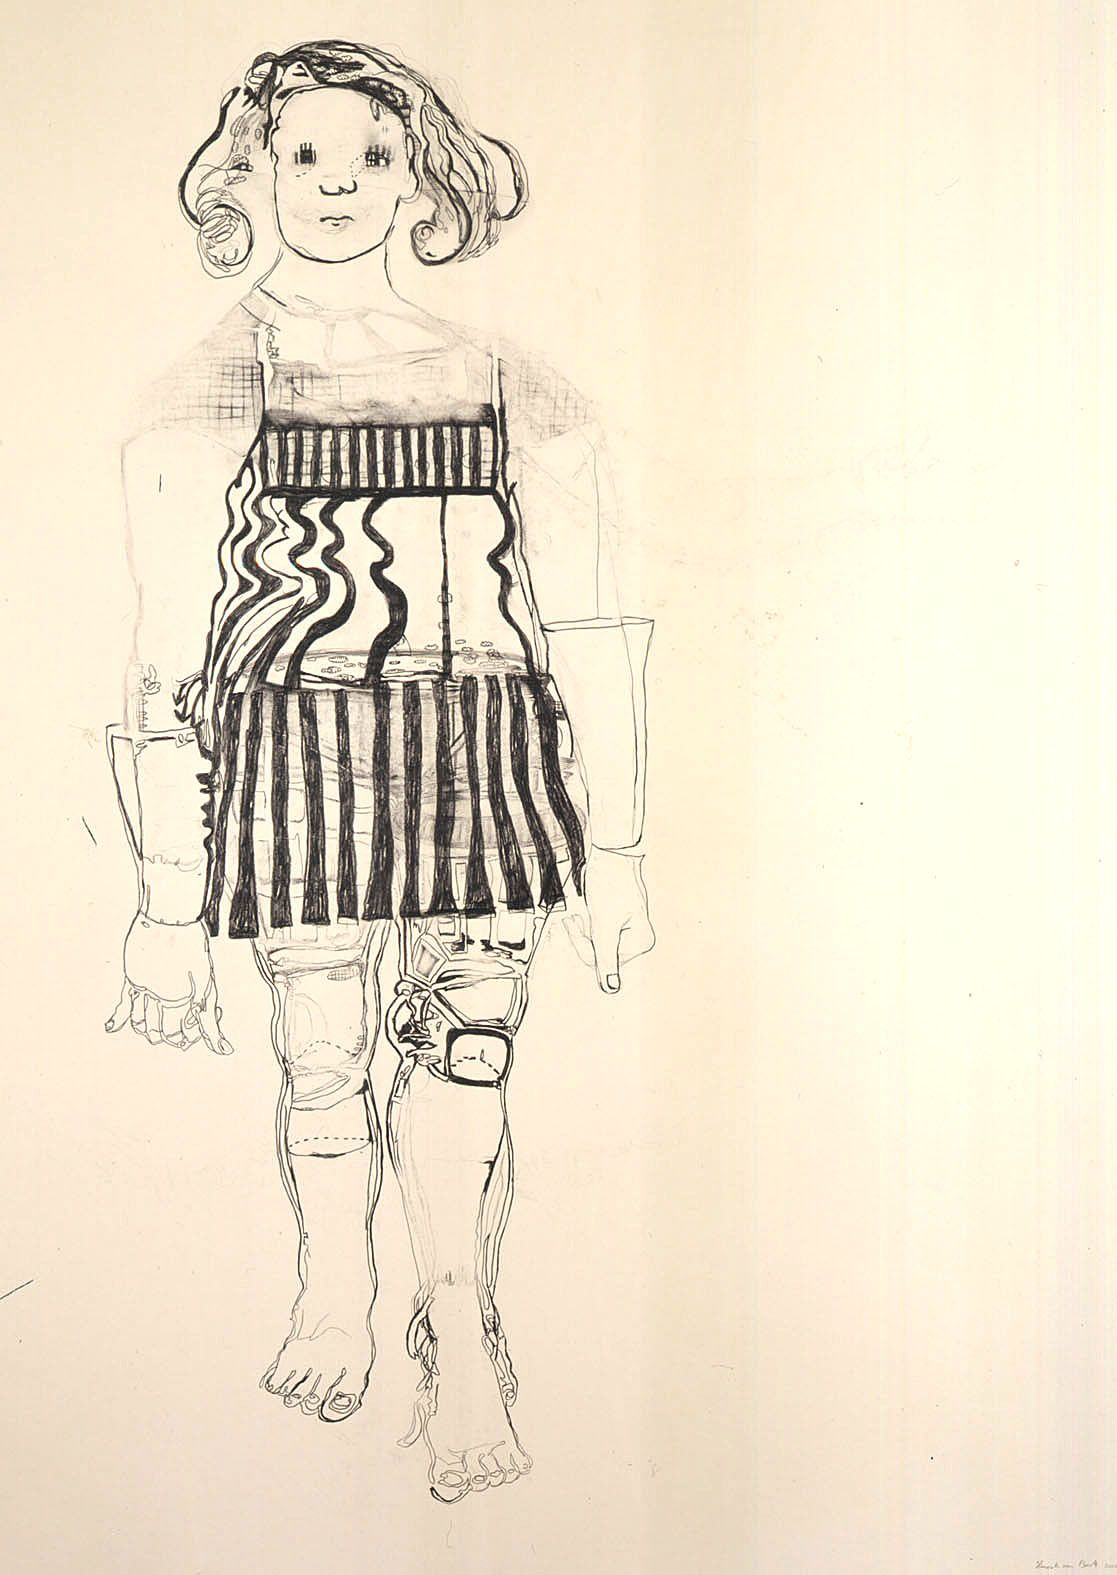 girl with striped clothing by hannah van bart